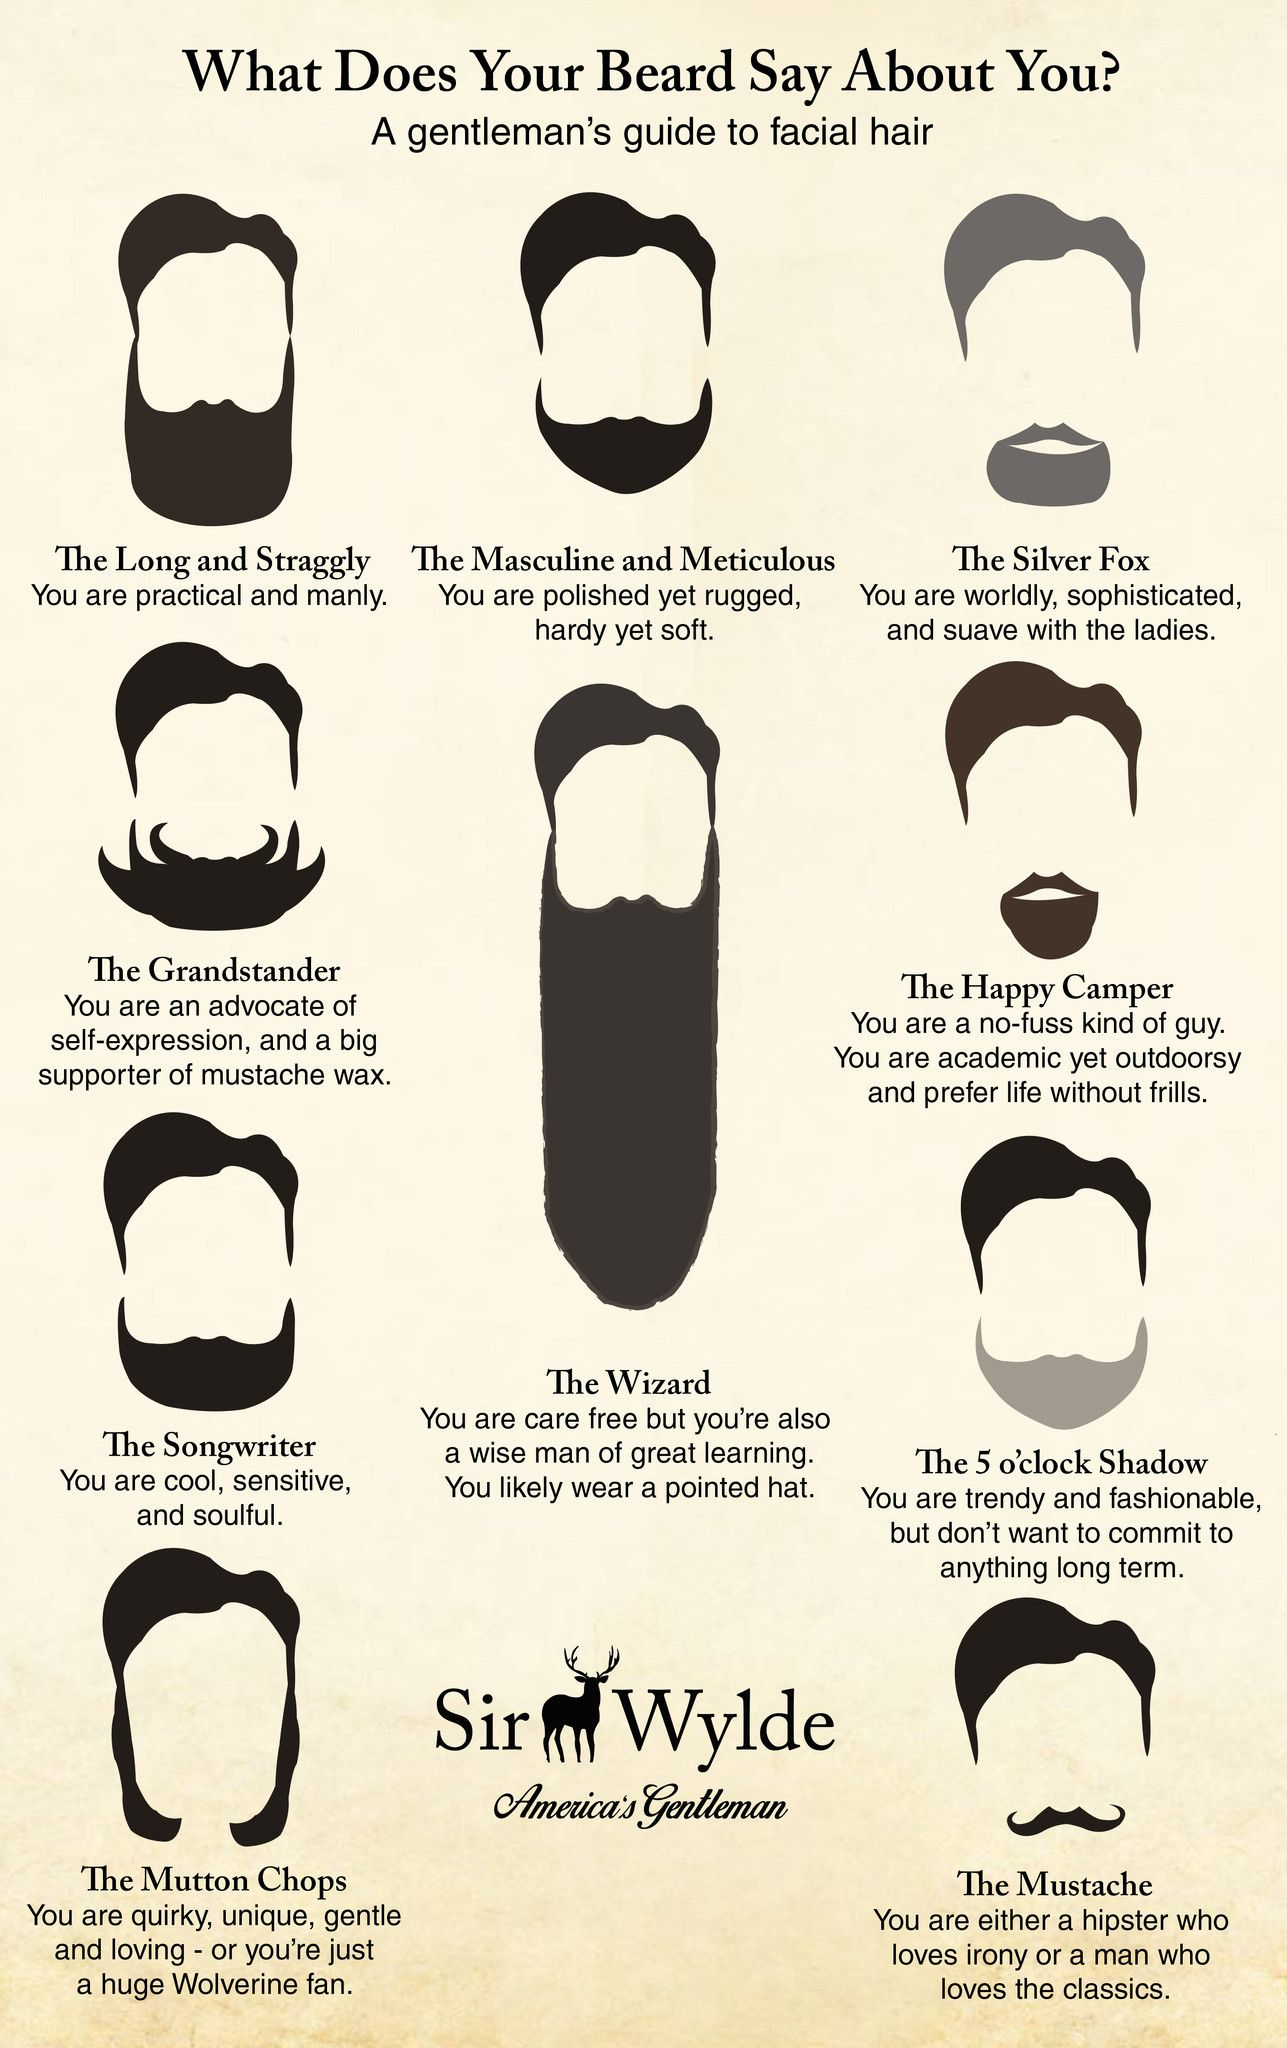 what does your beard say about you sir wylde sir wylde graphic design mustache wax. Black Bedroom Furniture Sets. Home Design Ideas